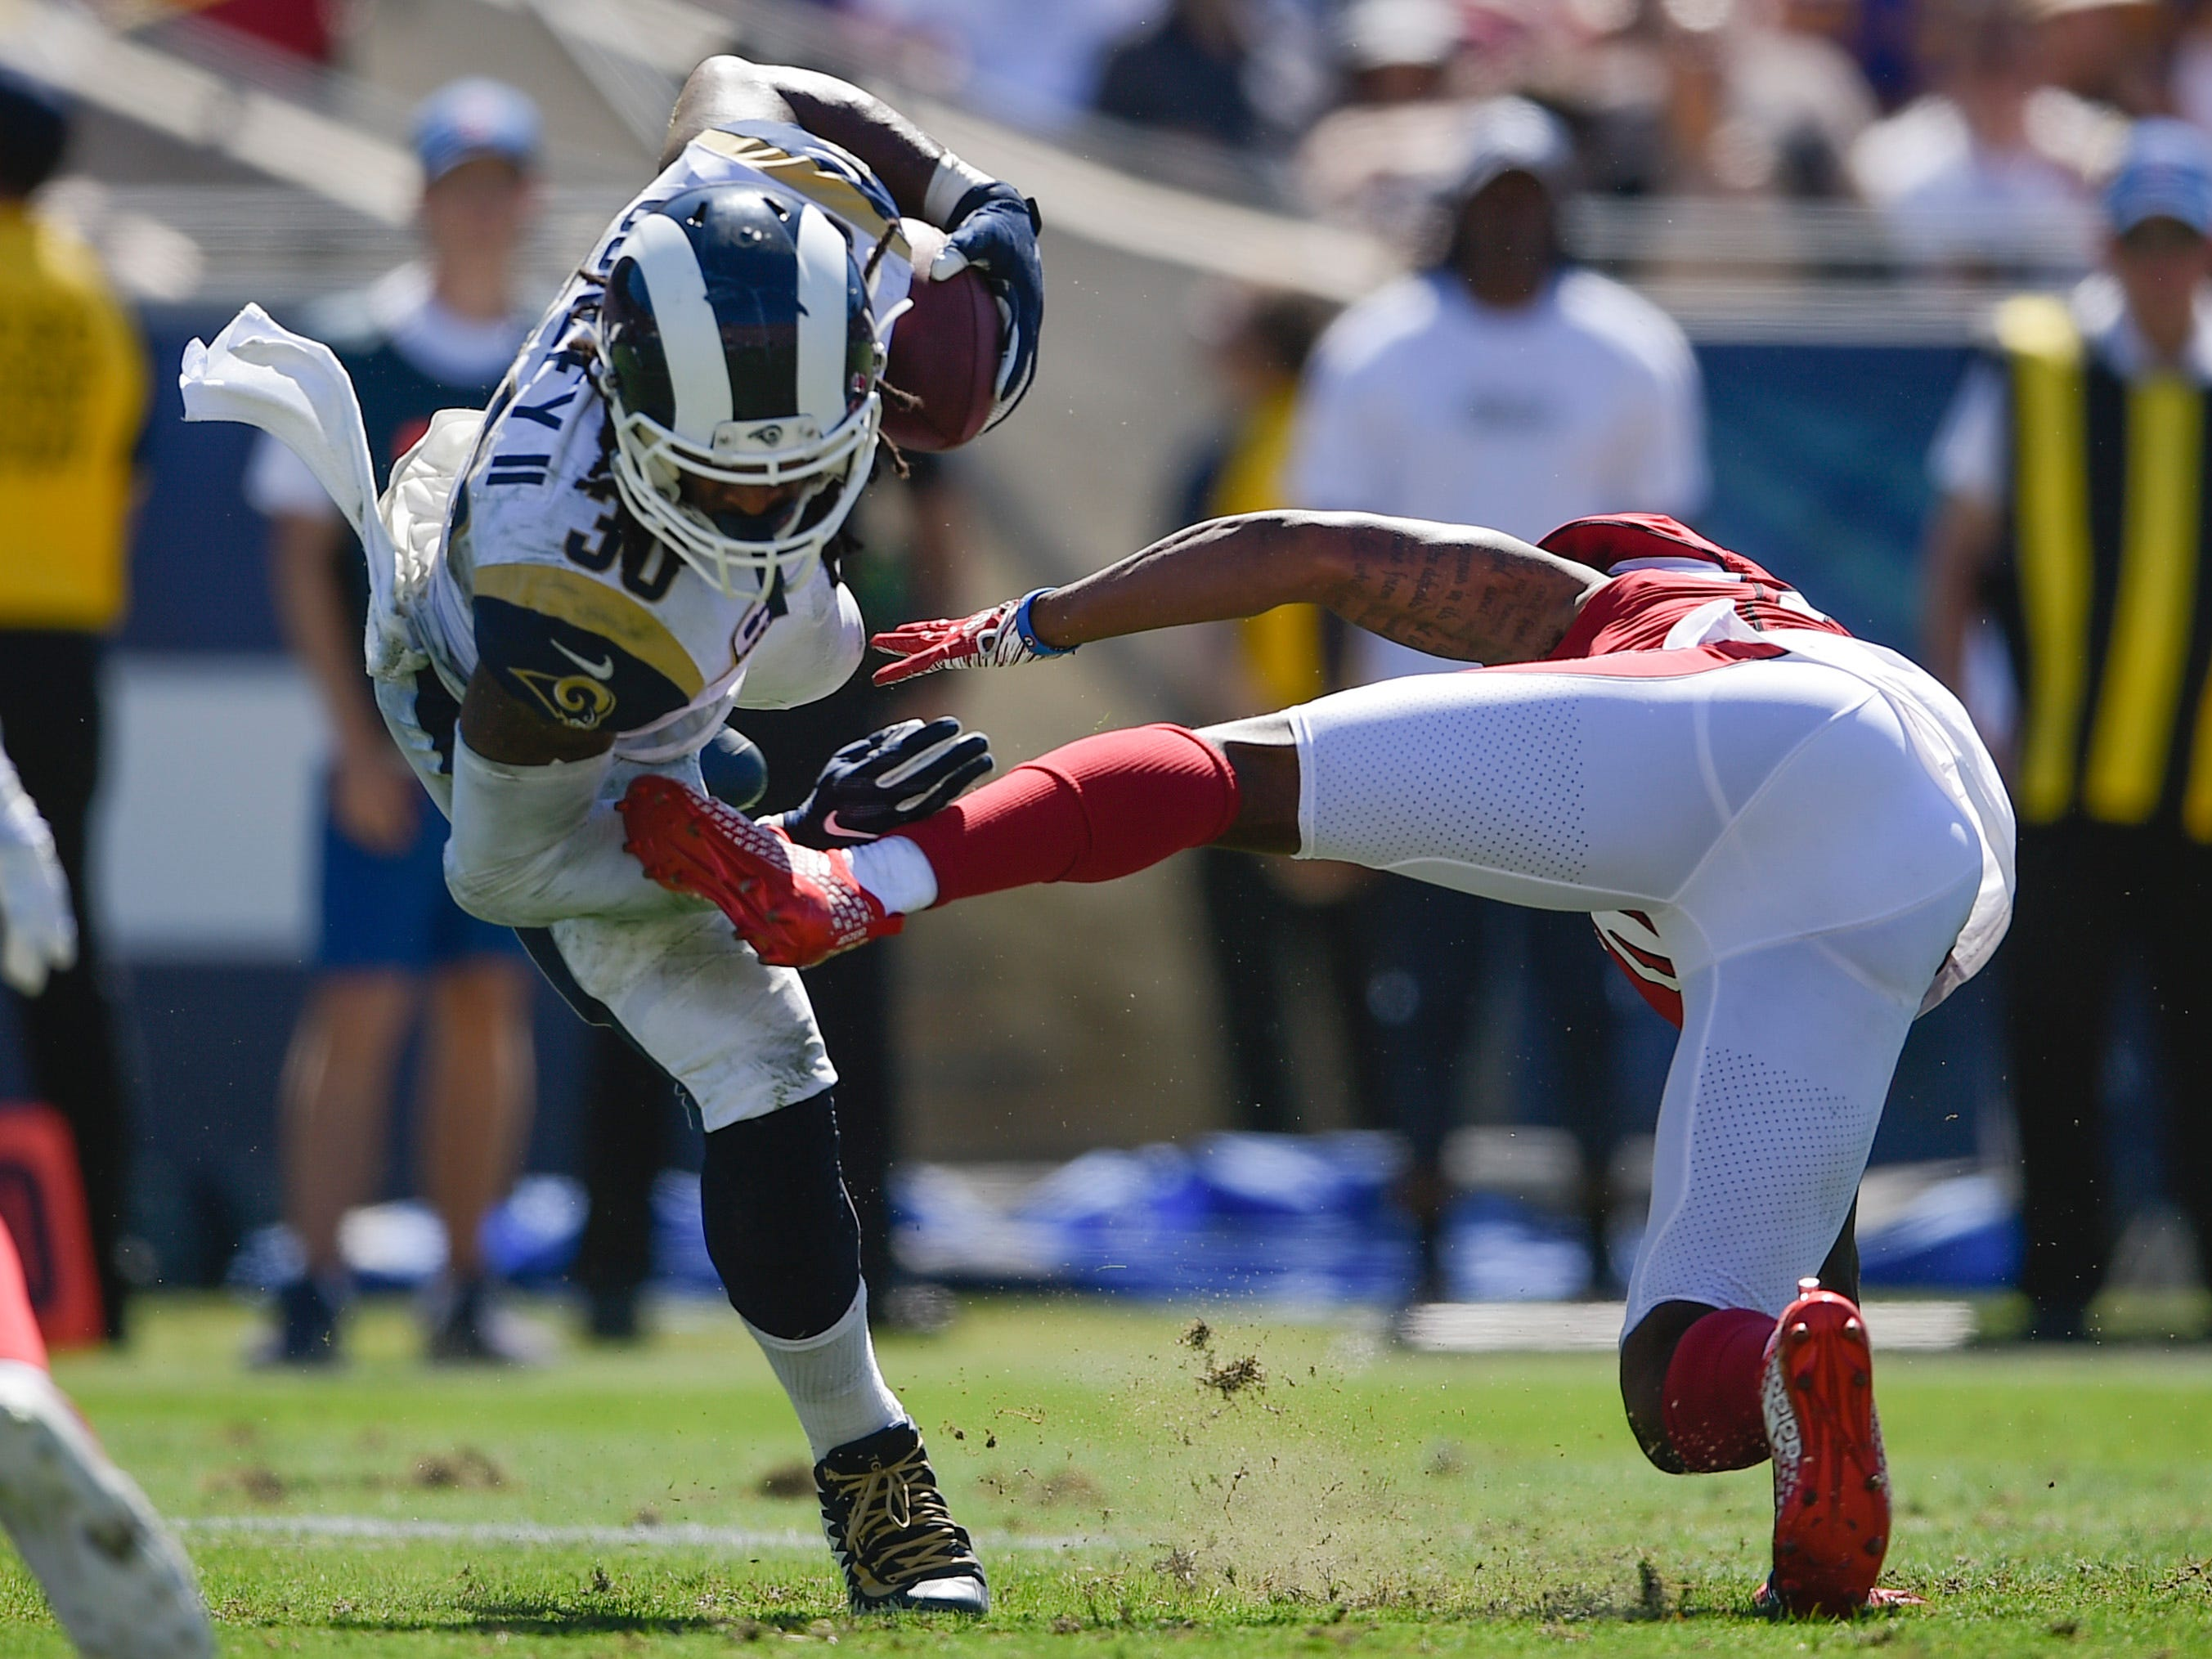 Sep 16, 2018; Los Angeles, CA, USA; Arizona Cardinals cornerback Bene Benwikere (23) tackles Los Angeles Rams running back Todd Gurley II (30) during the first half at Los Angeles Memorial Coliseum. Mandatory Credit: Kelvin Kuo-USA TODAY Sports